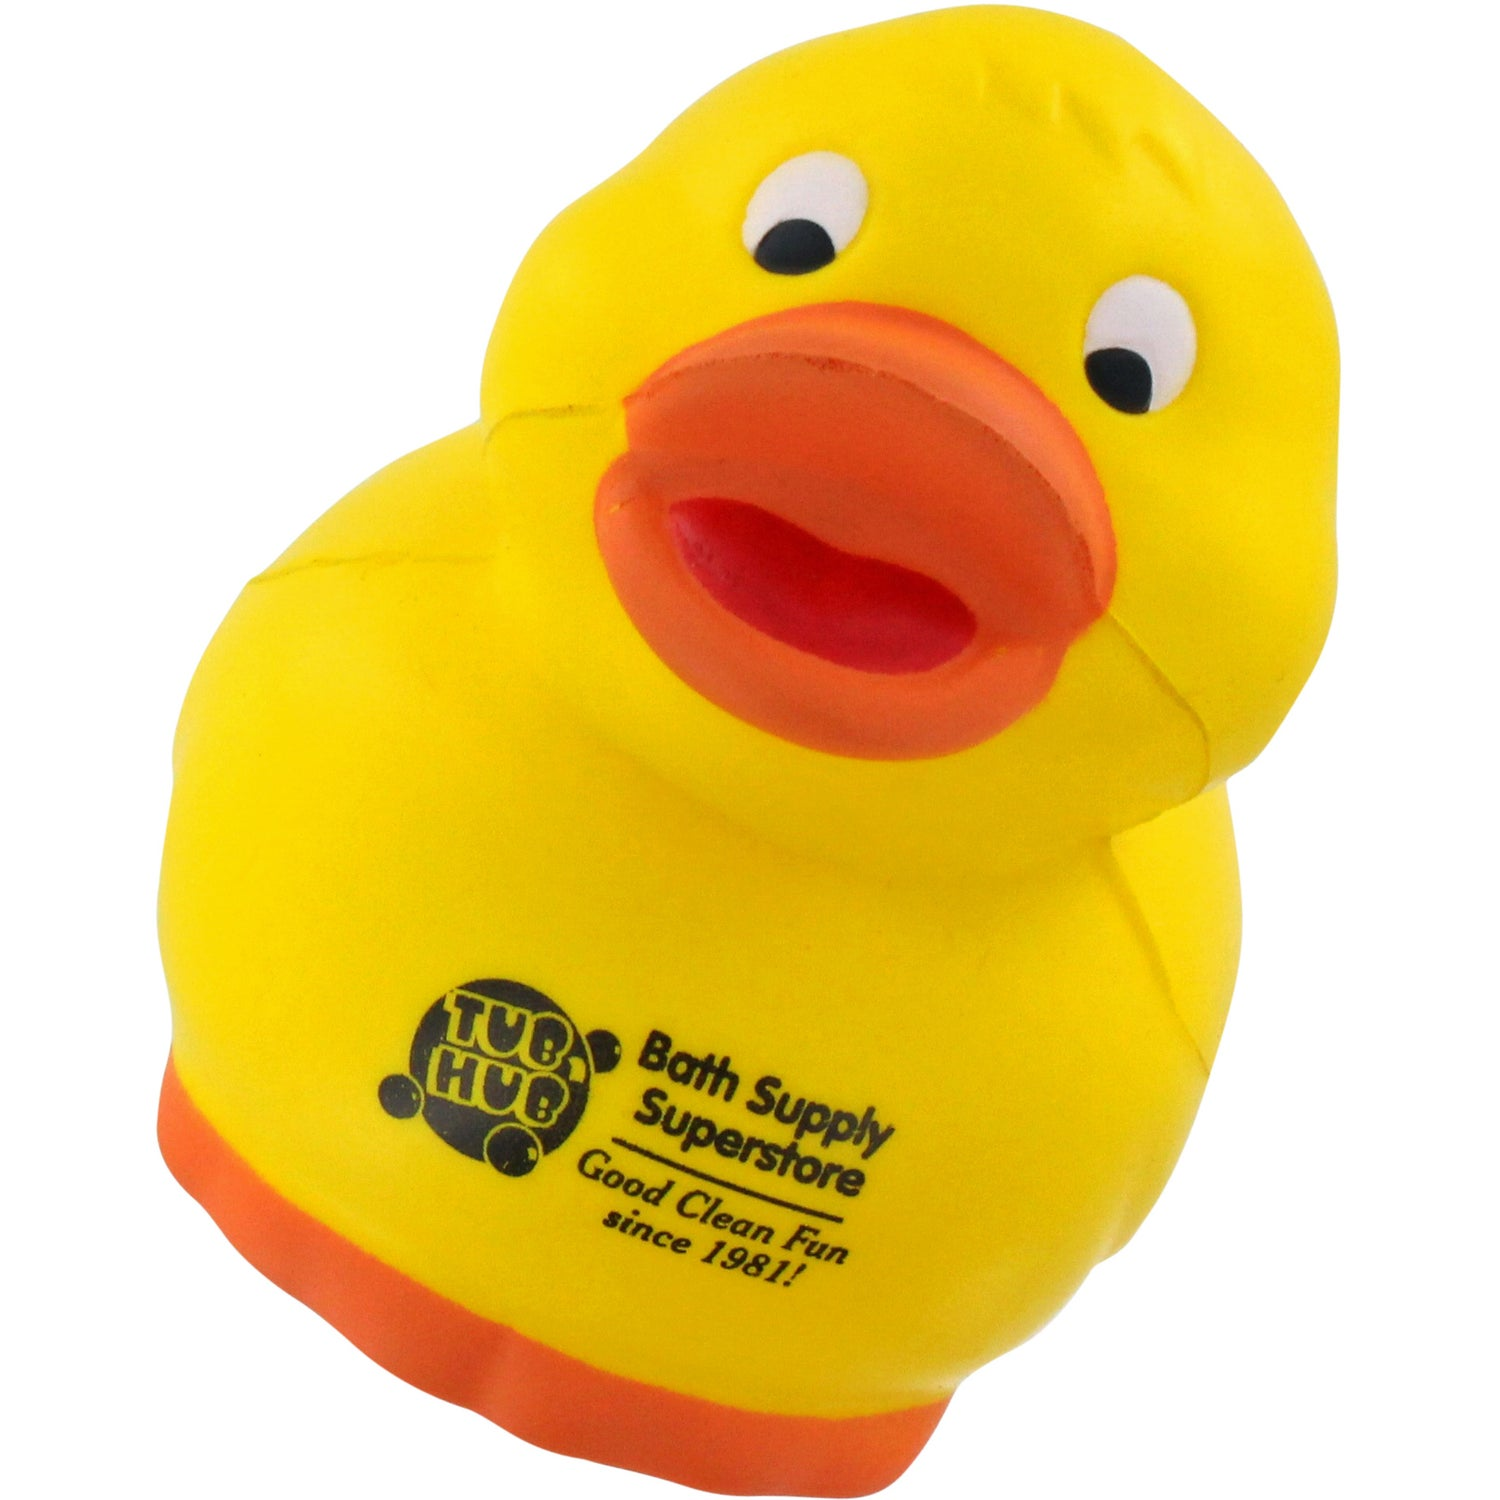 Promotional Rubber Duck Stress Balls with Custom Logo for $1.326 Ea.